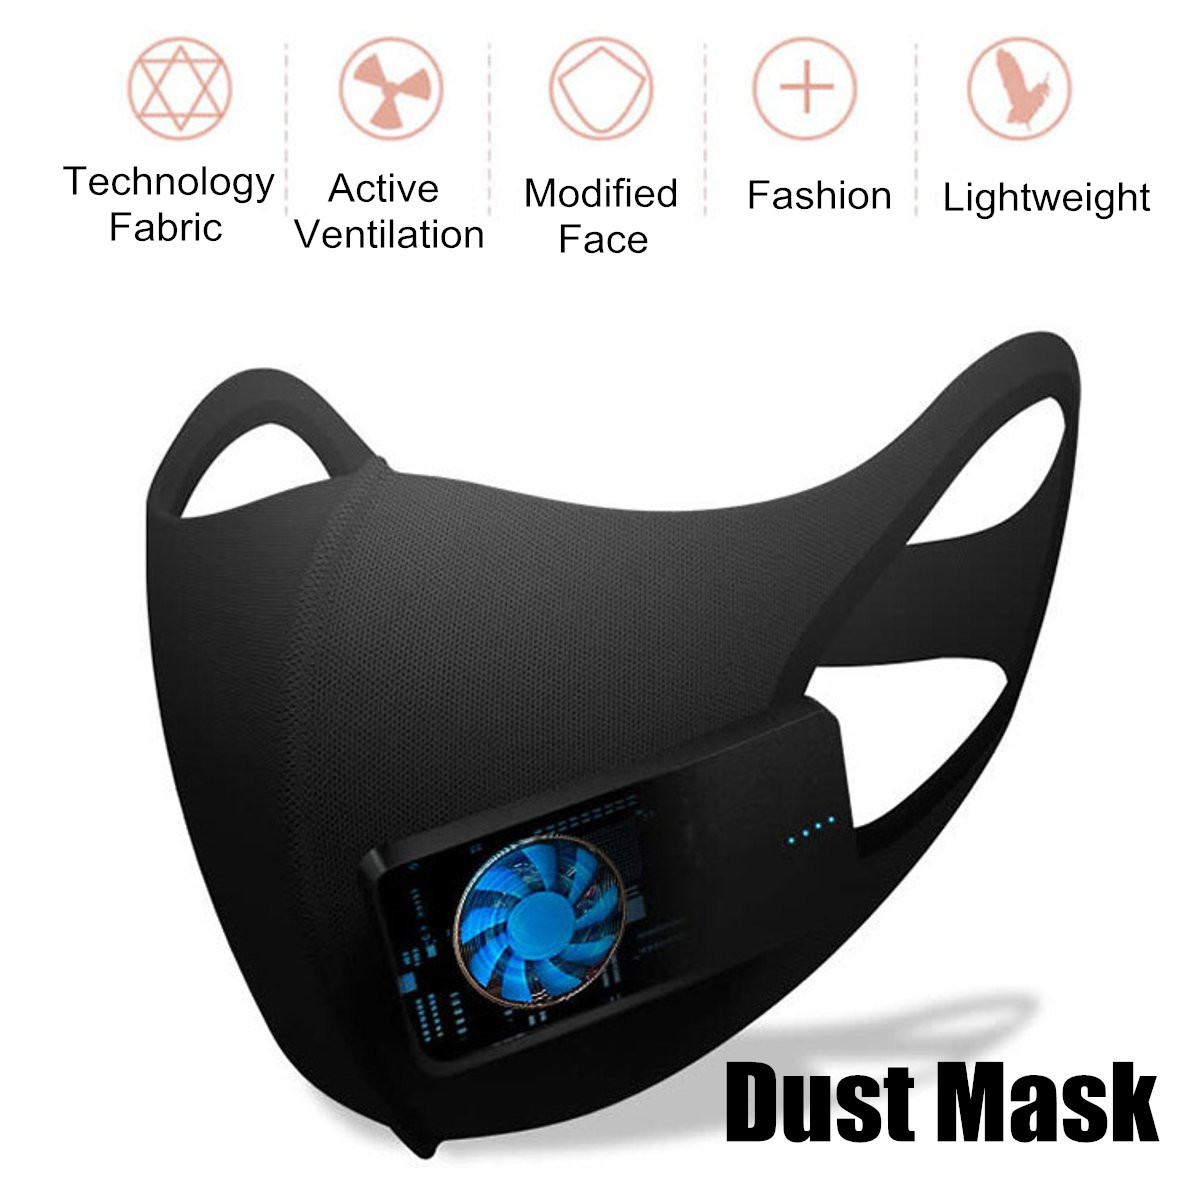 5V Electric Valved Outdoor Riding Dust Mask PM2.5 Breath Protective Respirator Spraying Spraying Workplace Safety Supplies Black